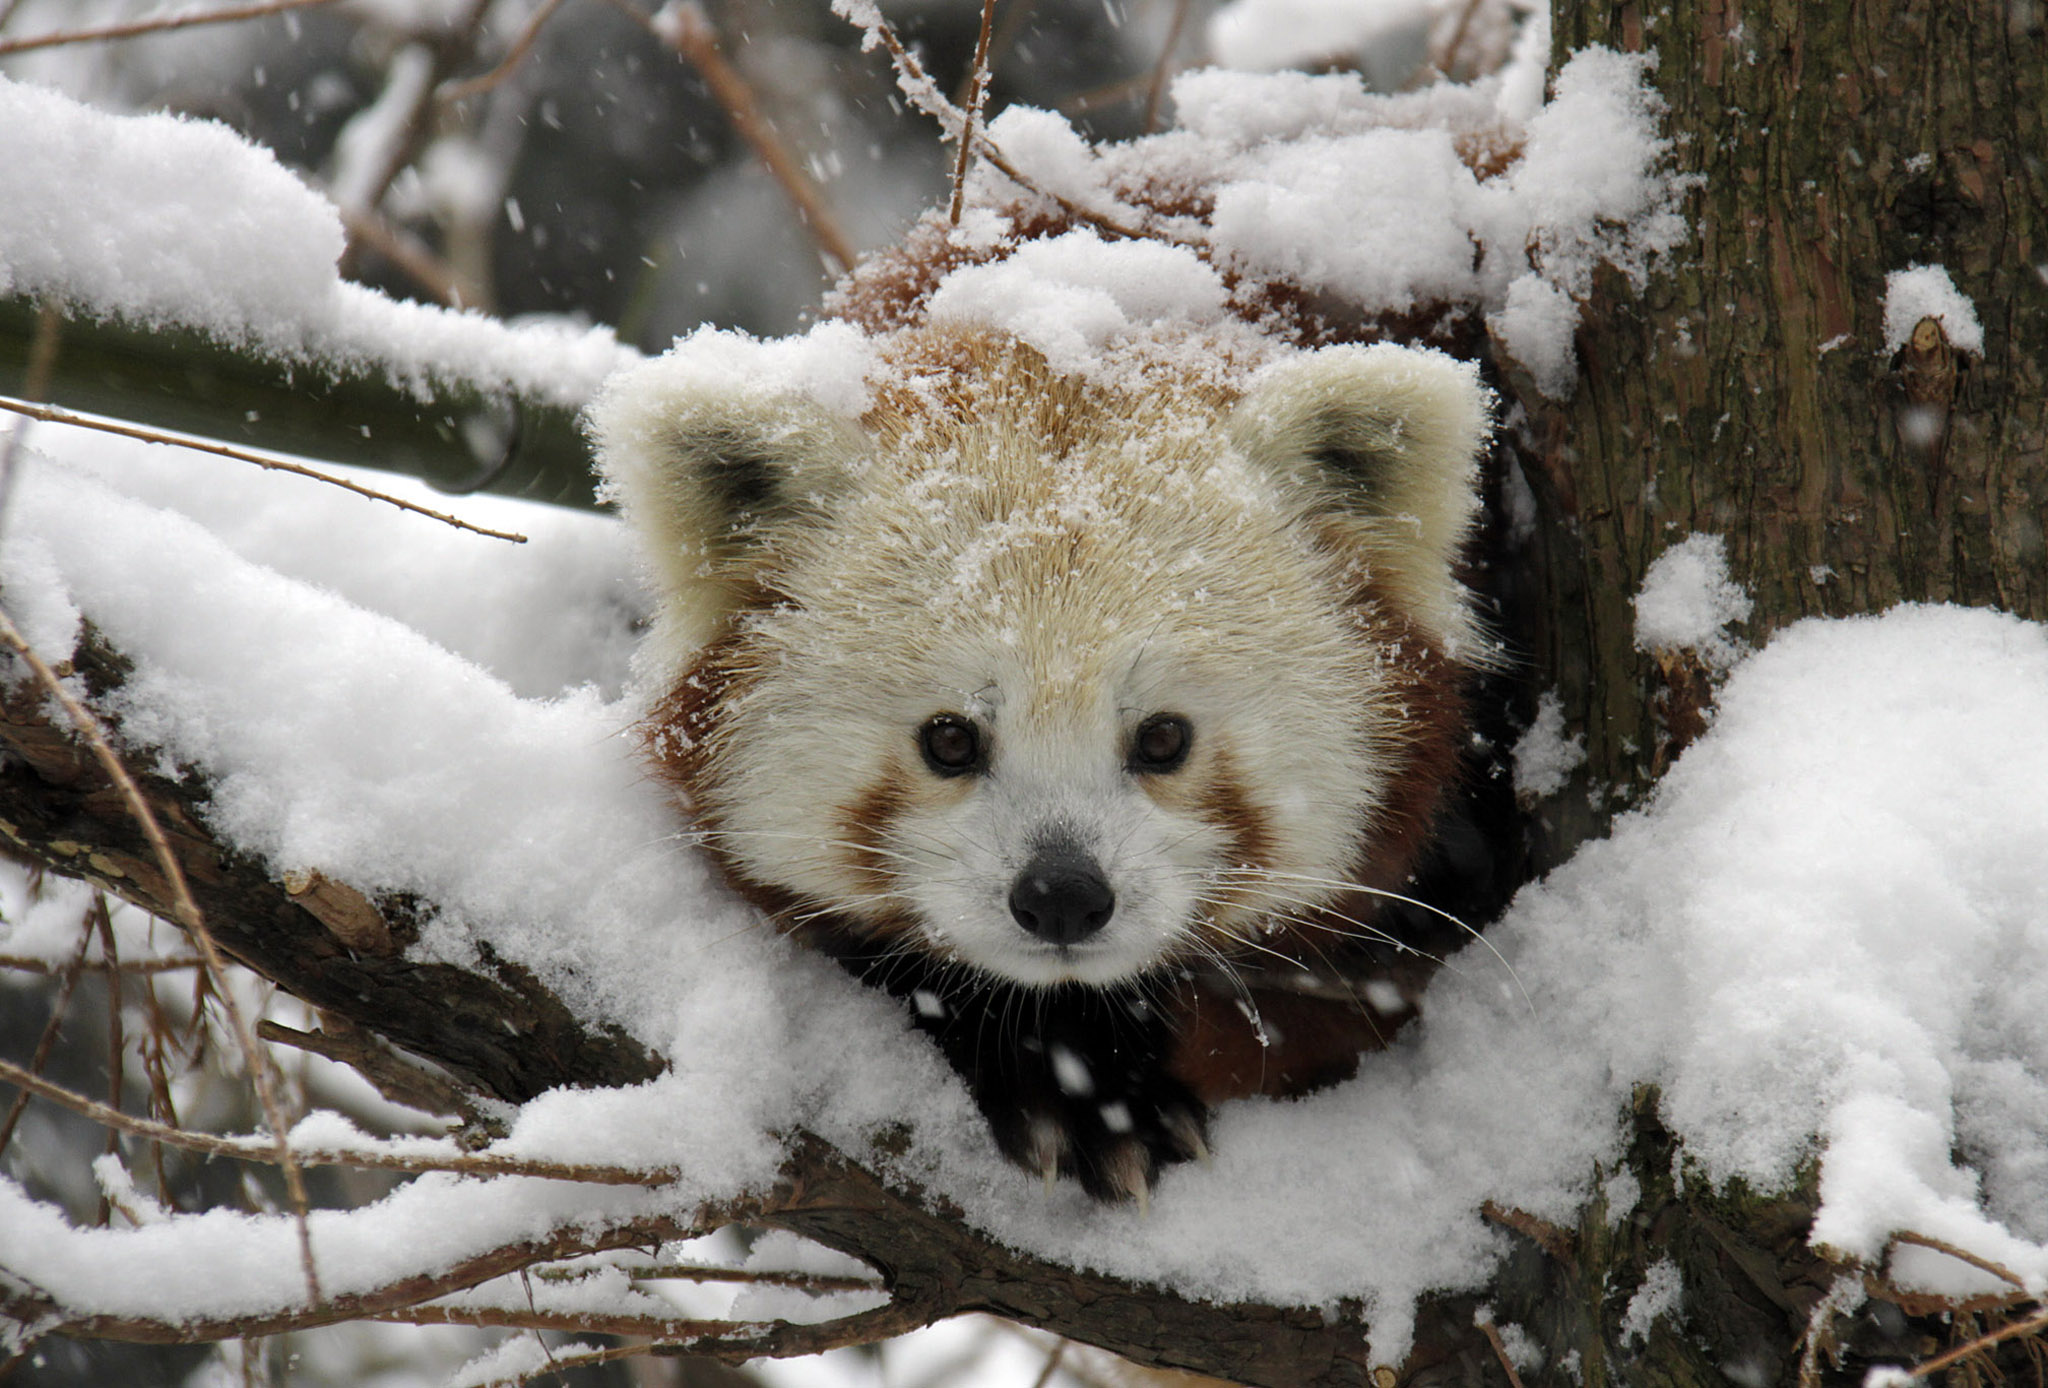 Aninimal Book: Red Panda in Snow | The NeoSmart Files